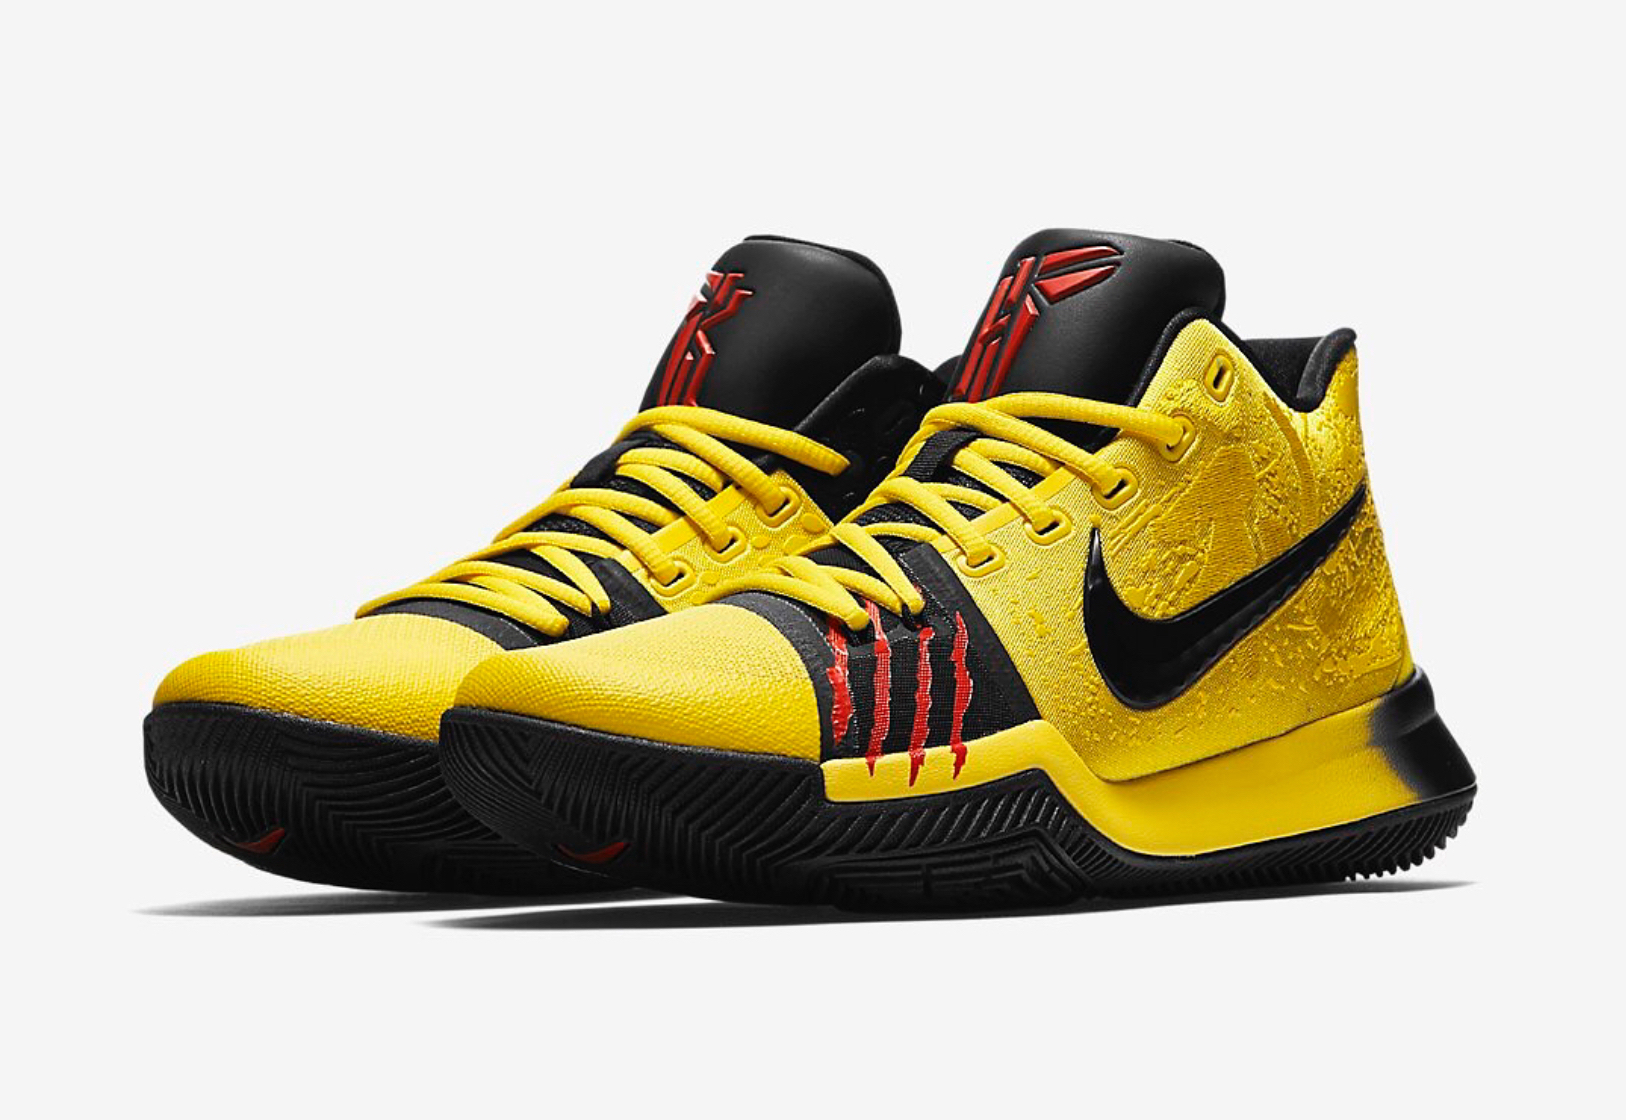 new concept 3784f f203c Mamba Mentality: Detailed Look at the Nike Kyrie 3 MM 'Bruce ...